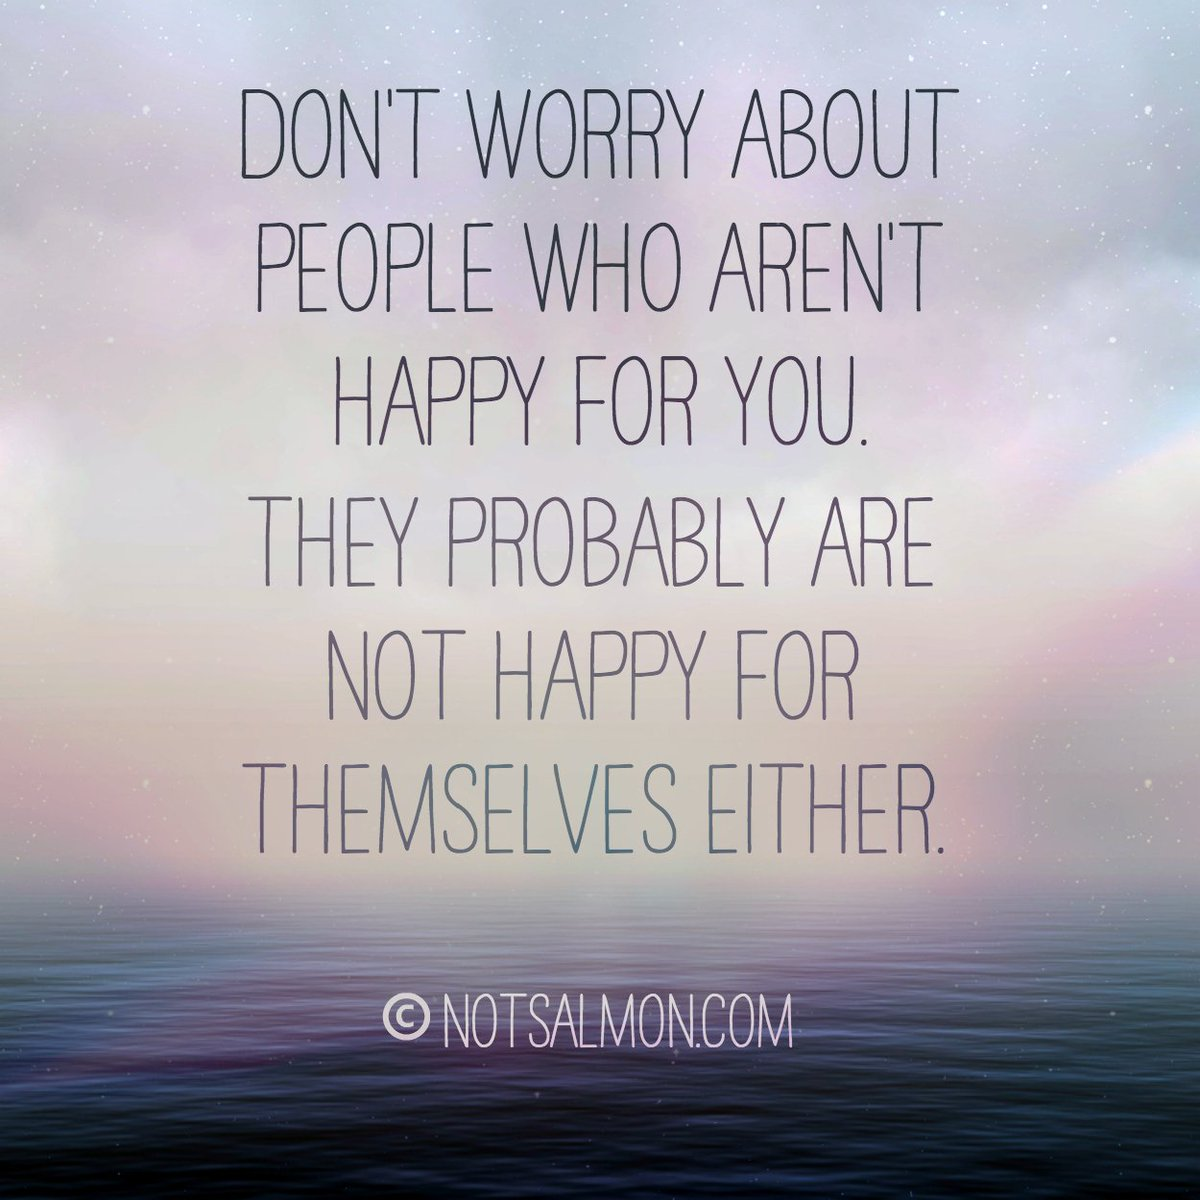 Dont worry about people who arent happy for you. They probably aren't happy for themselves either. #notsalmon #quote https://t.co/AUoUESfGAQ